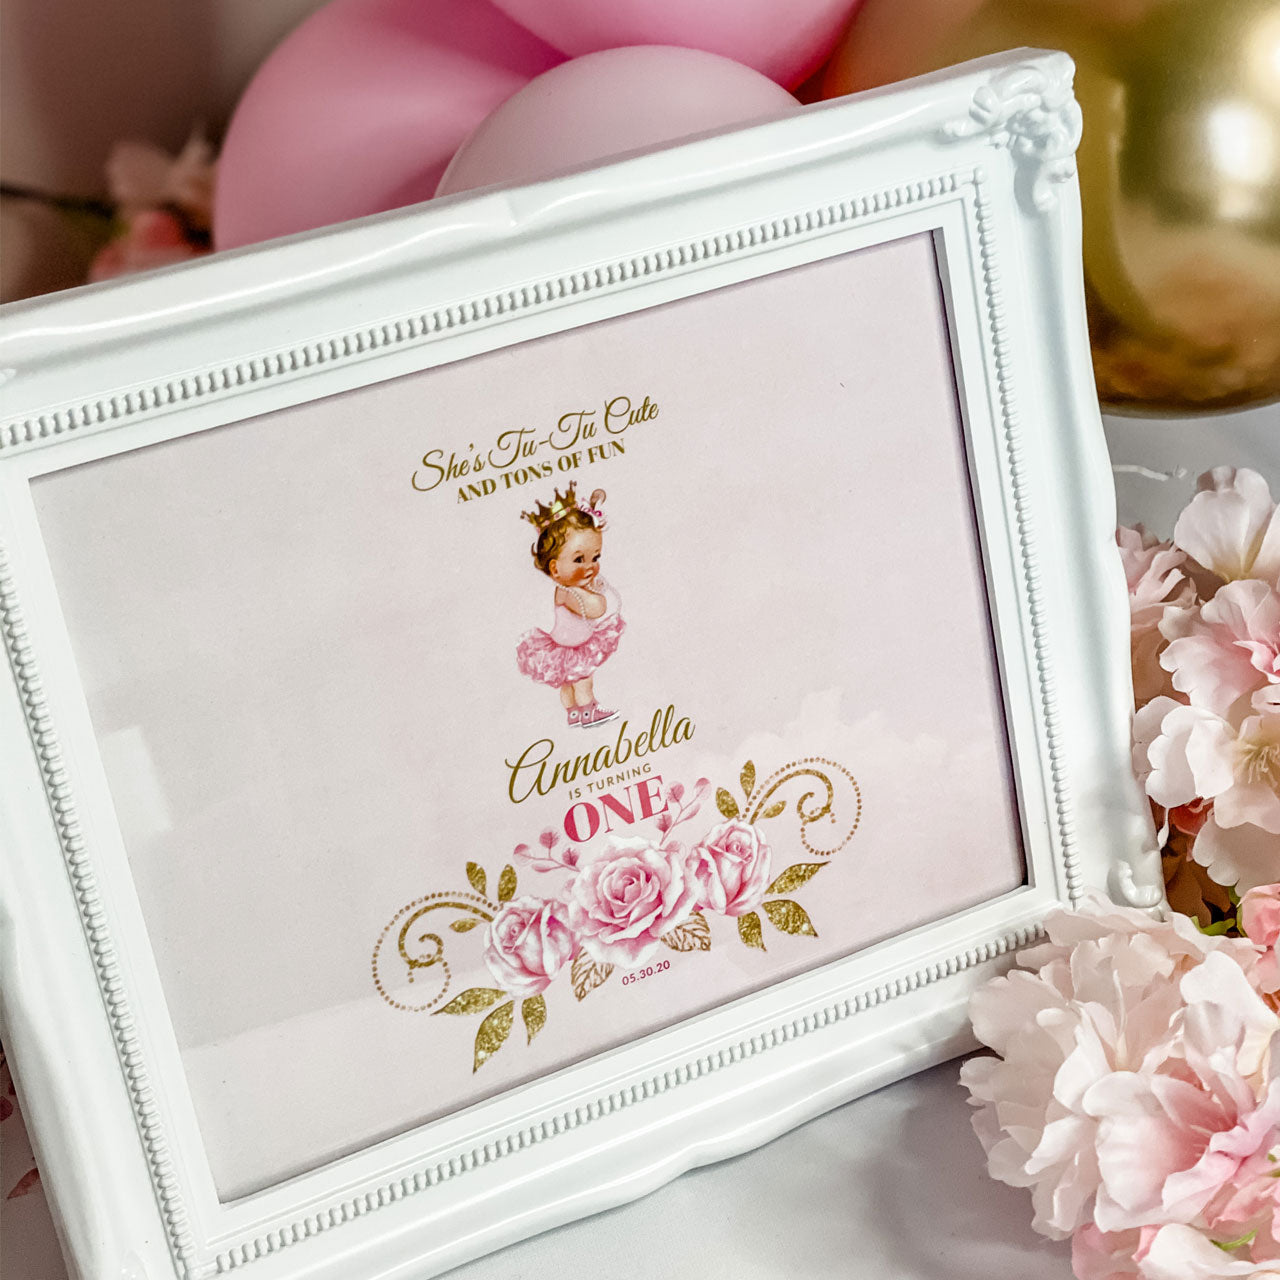 "BALLERINA PRINCESS BIRTHDAY, GIRL FIRST BIRTHDAY,  KEEPSAKE 8"" X 10"" FRAME AND MATCHING PERSONALIZED GRAPHIC"